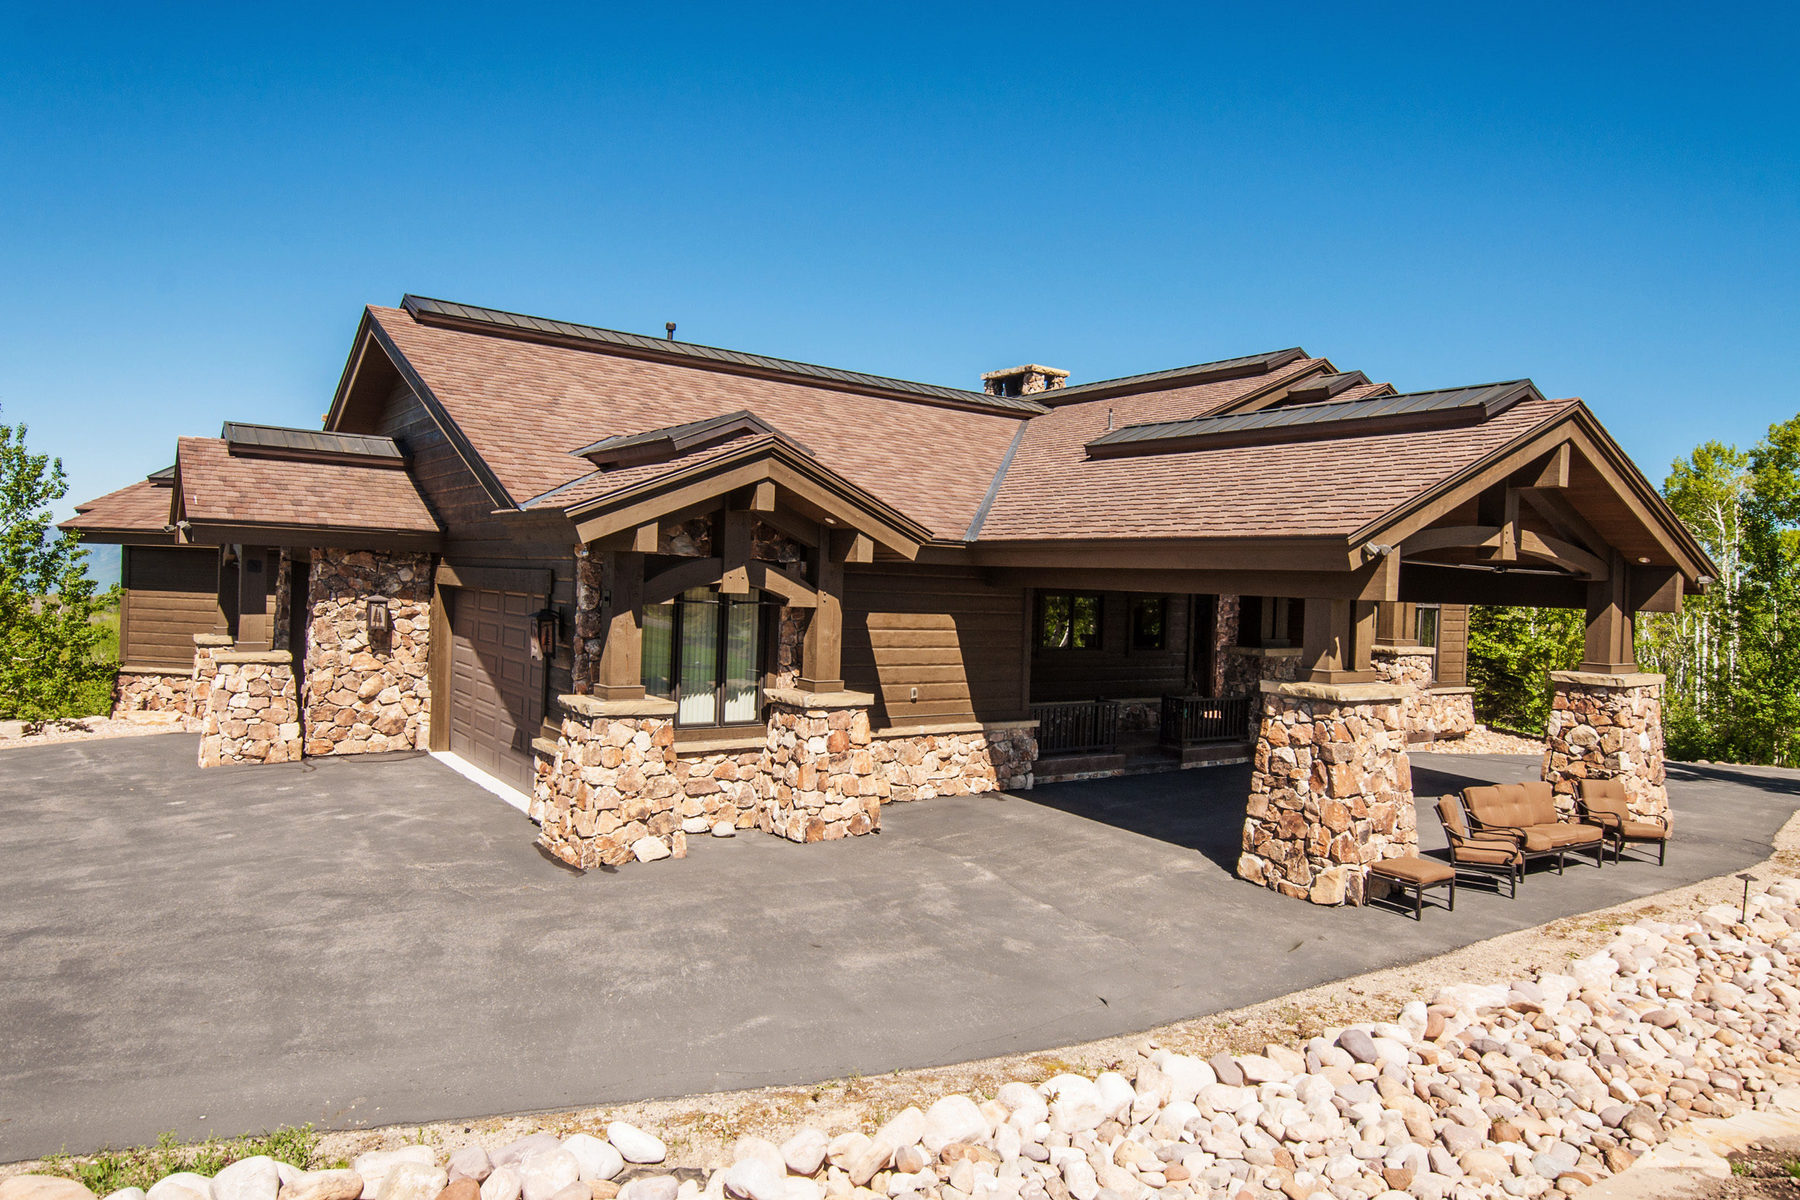 Casa Unifamiliar por un Venta en Fabulous Home in Wolf Creek 9156 E Forest Creek Woodland, Utah 84036 Estados Unidos